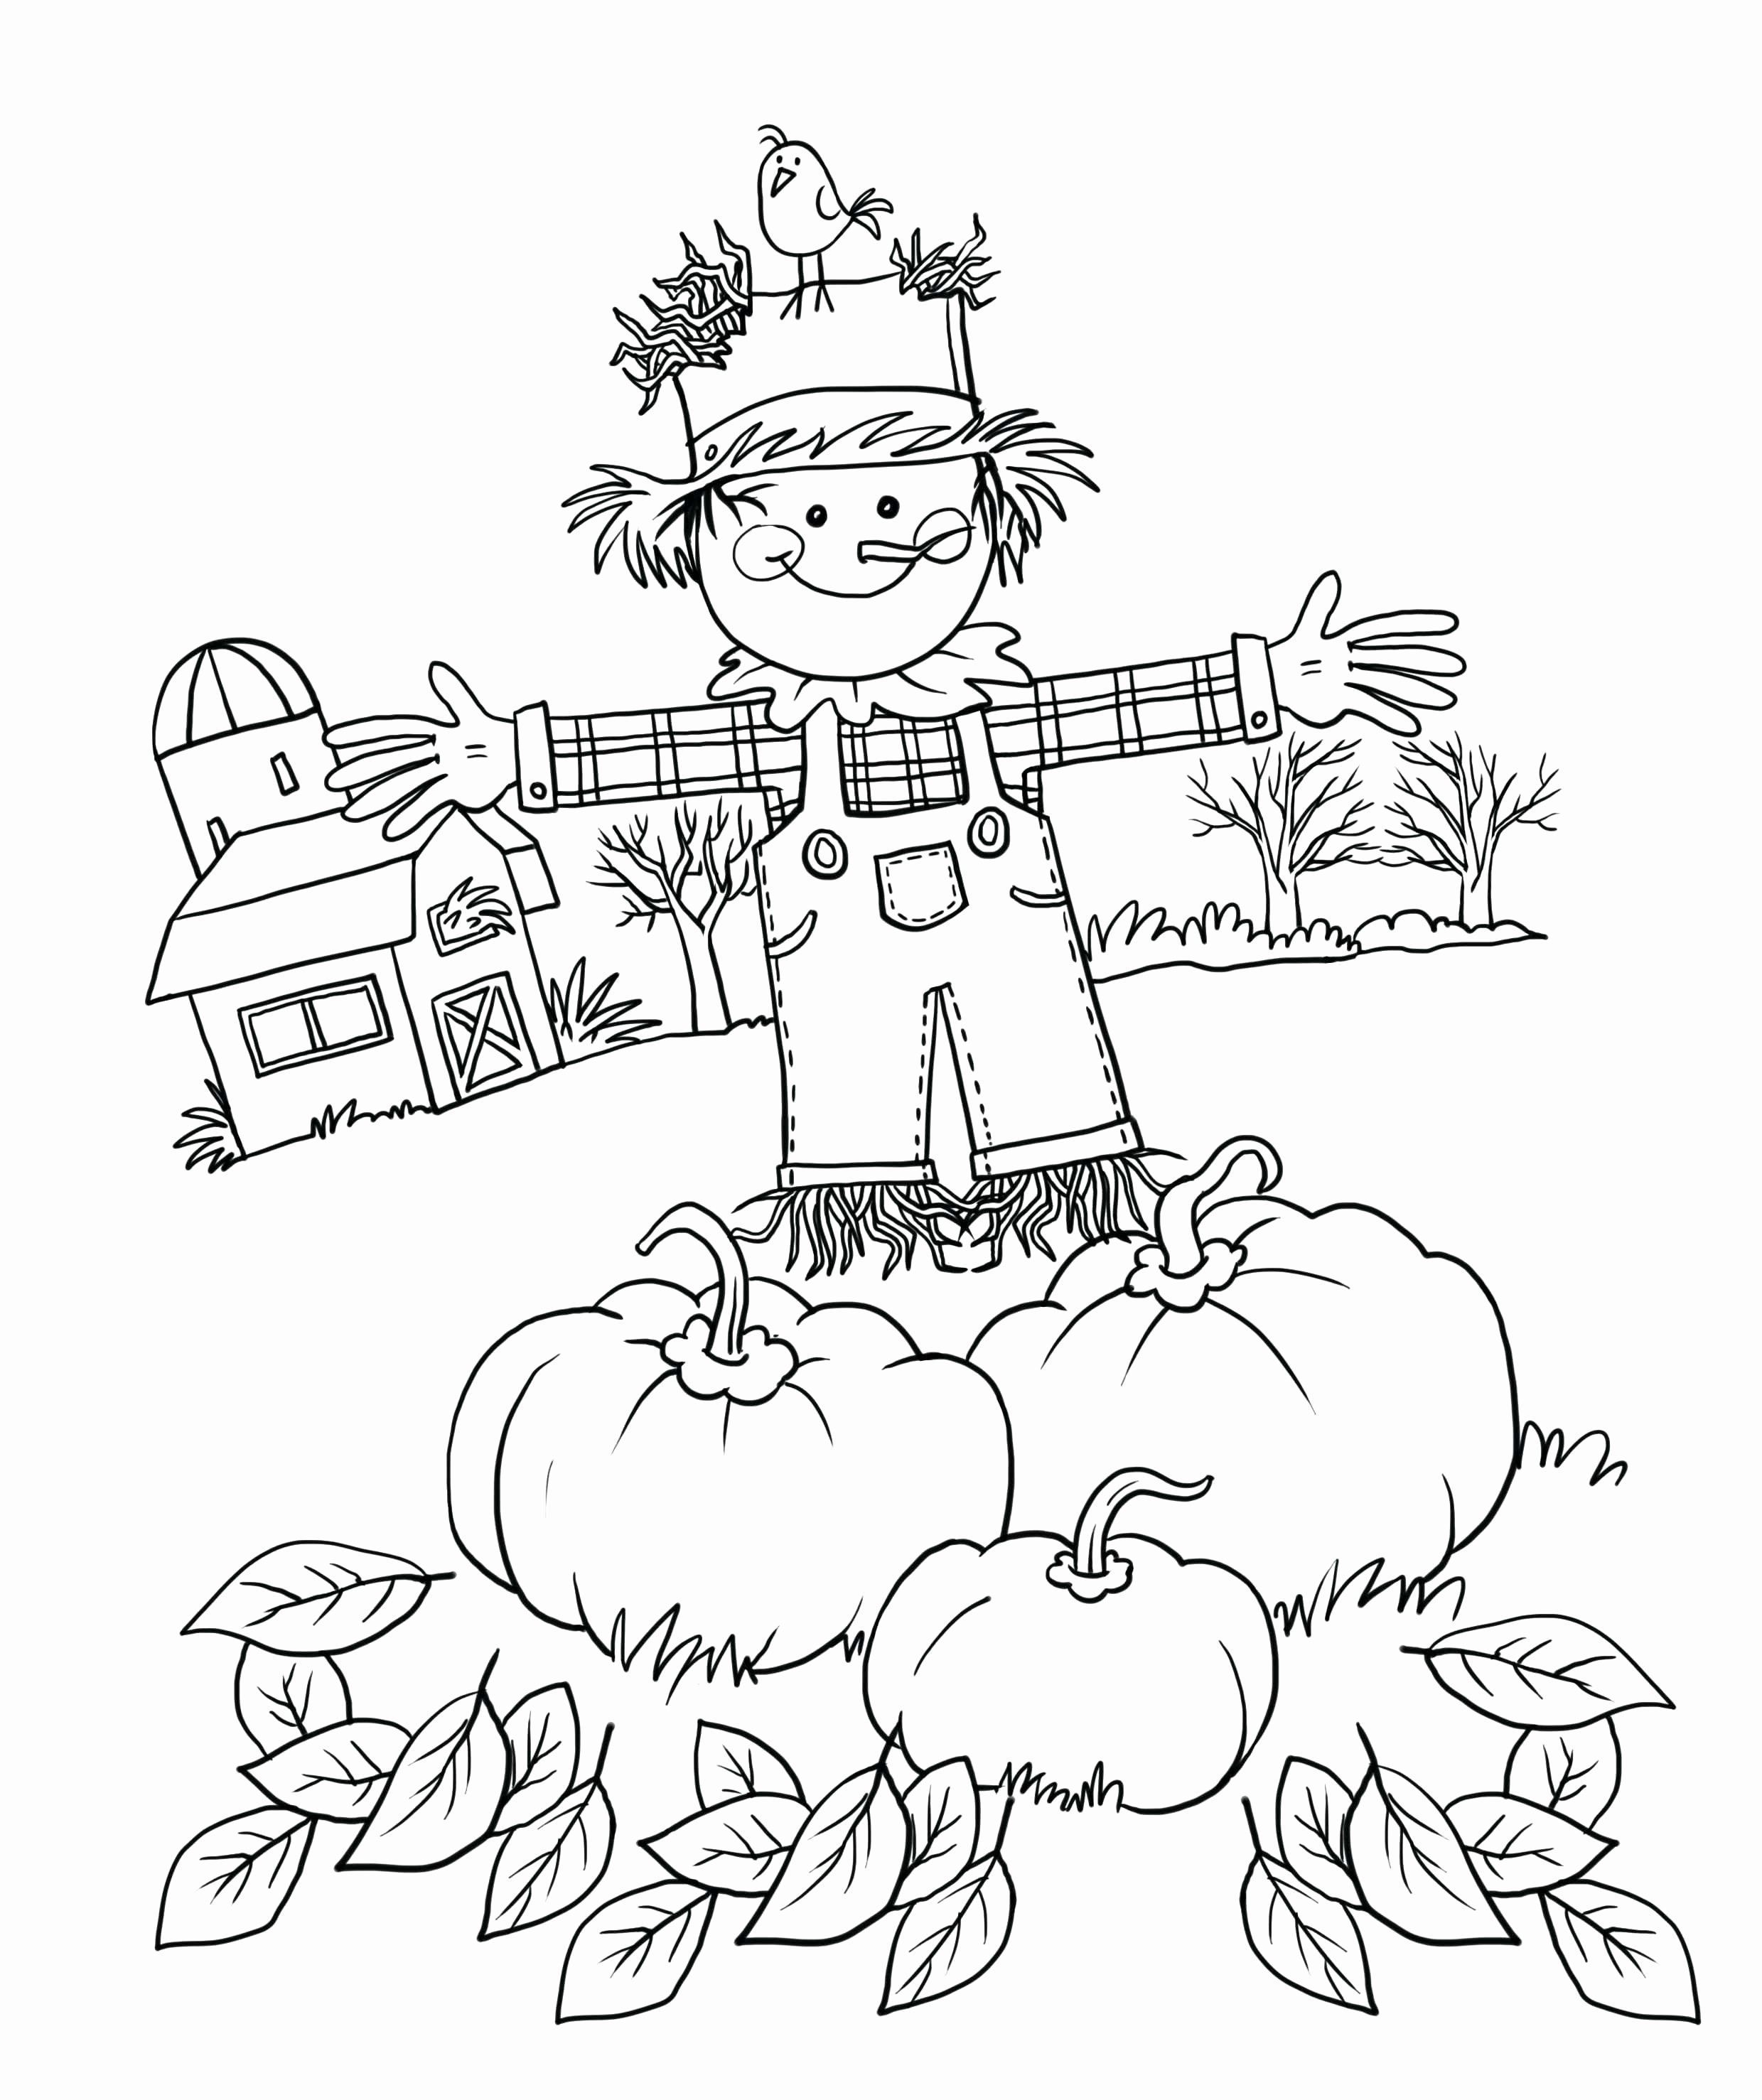 Animal Coloring Pages For 1st Grade Beautiful Addition Coloring Page Thanksgiving Nobelp F In 2021 Fall Coloring Sheets Fall Coloring Pages Thanksgiving Coloring Pages